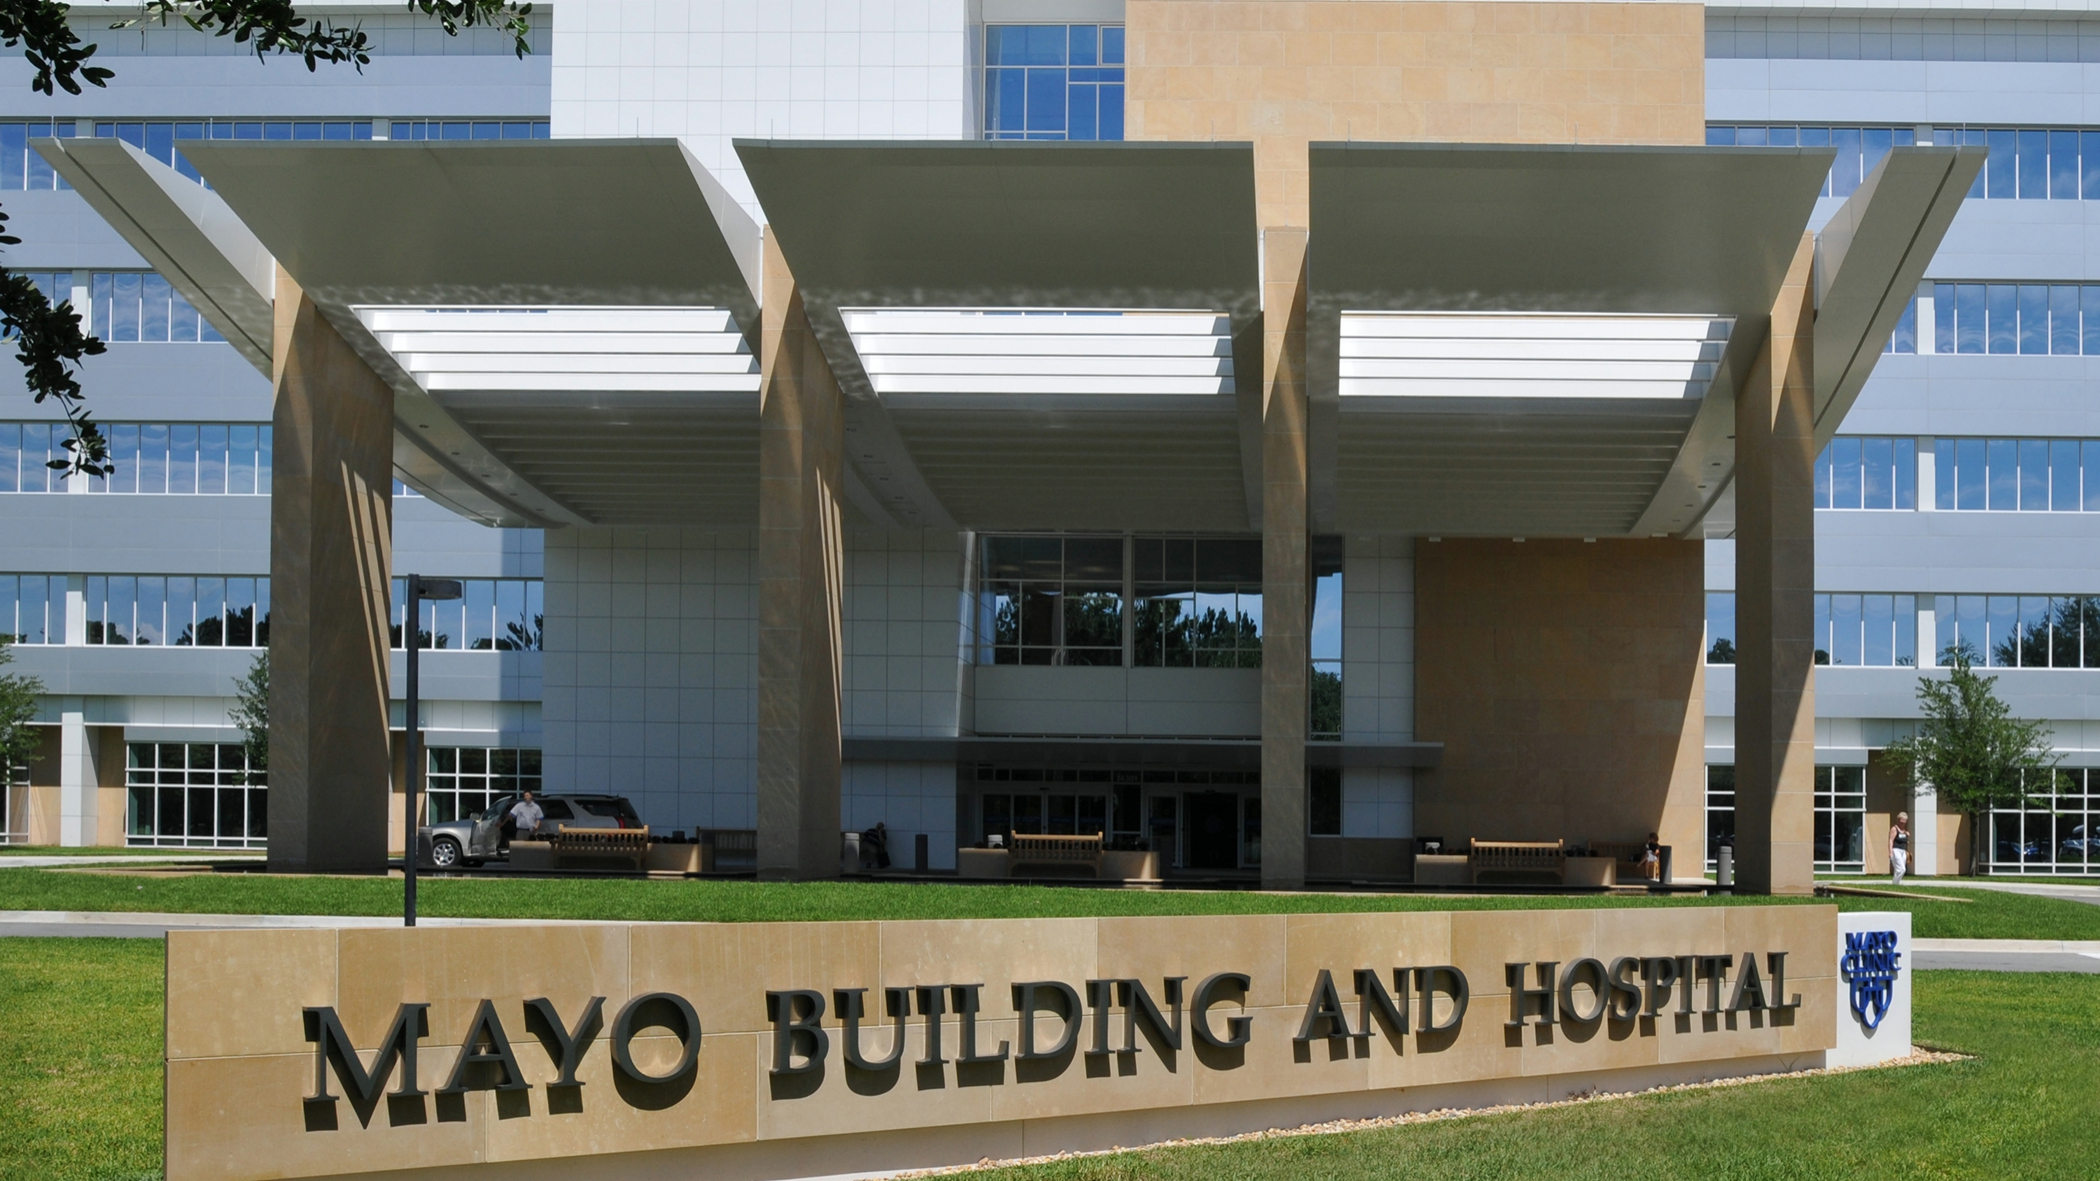 Closeup of Mayo Building and Hospital sign on the Mayo Clinic Florida campus